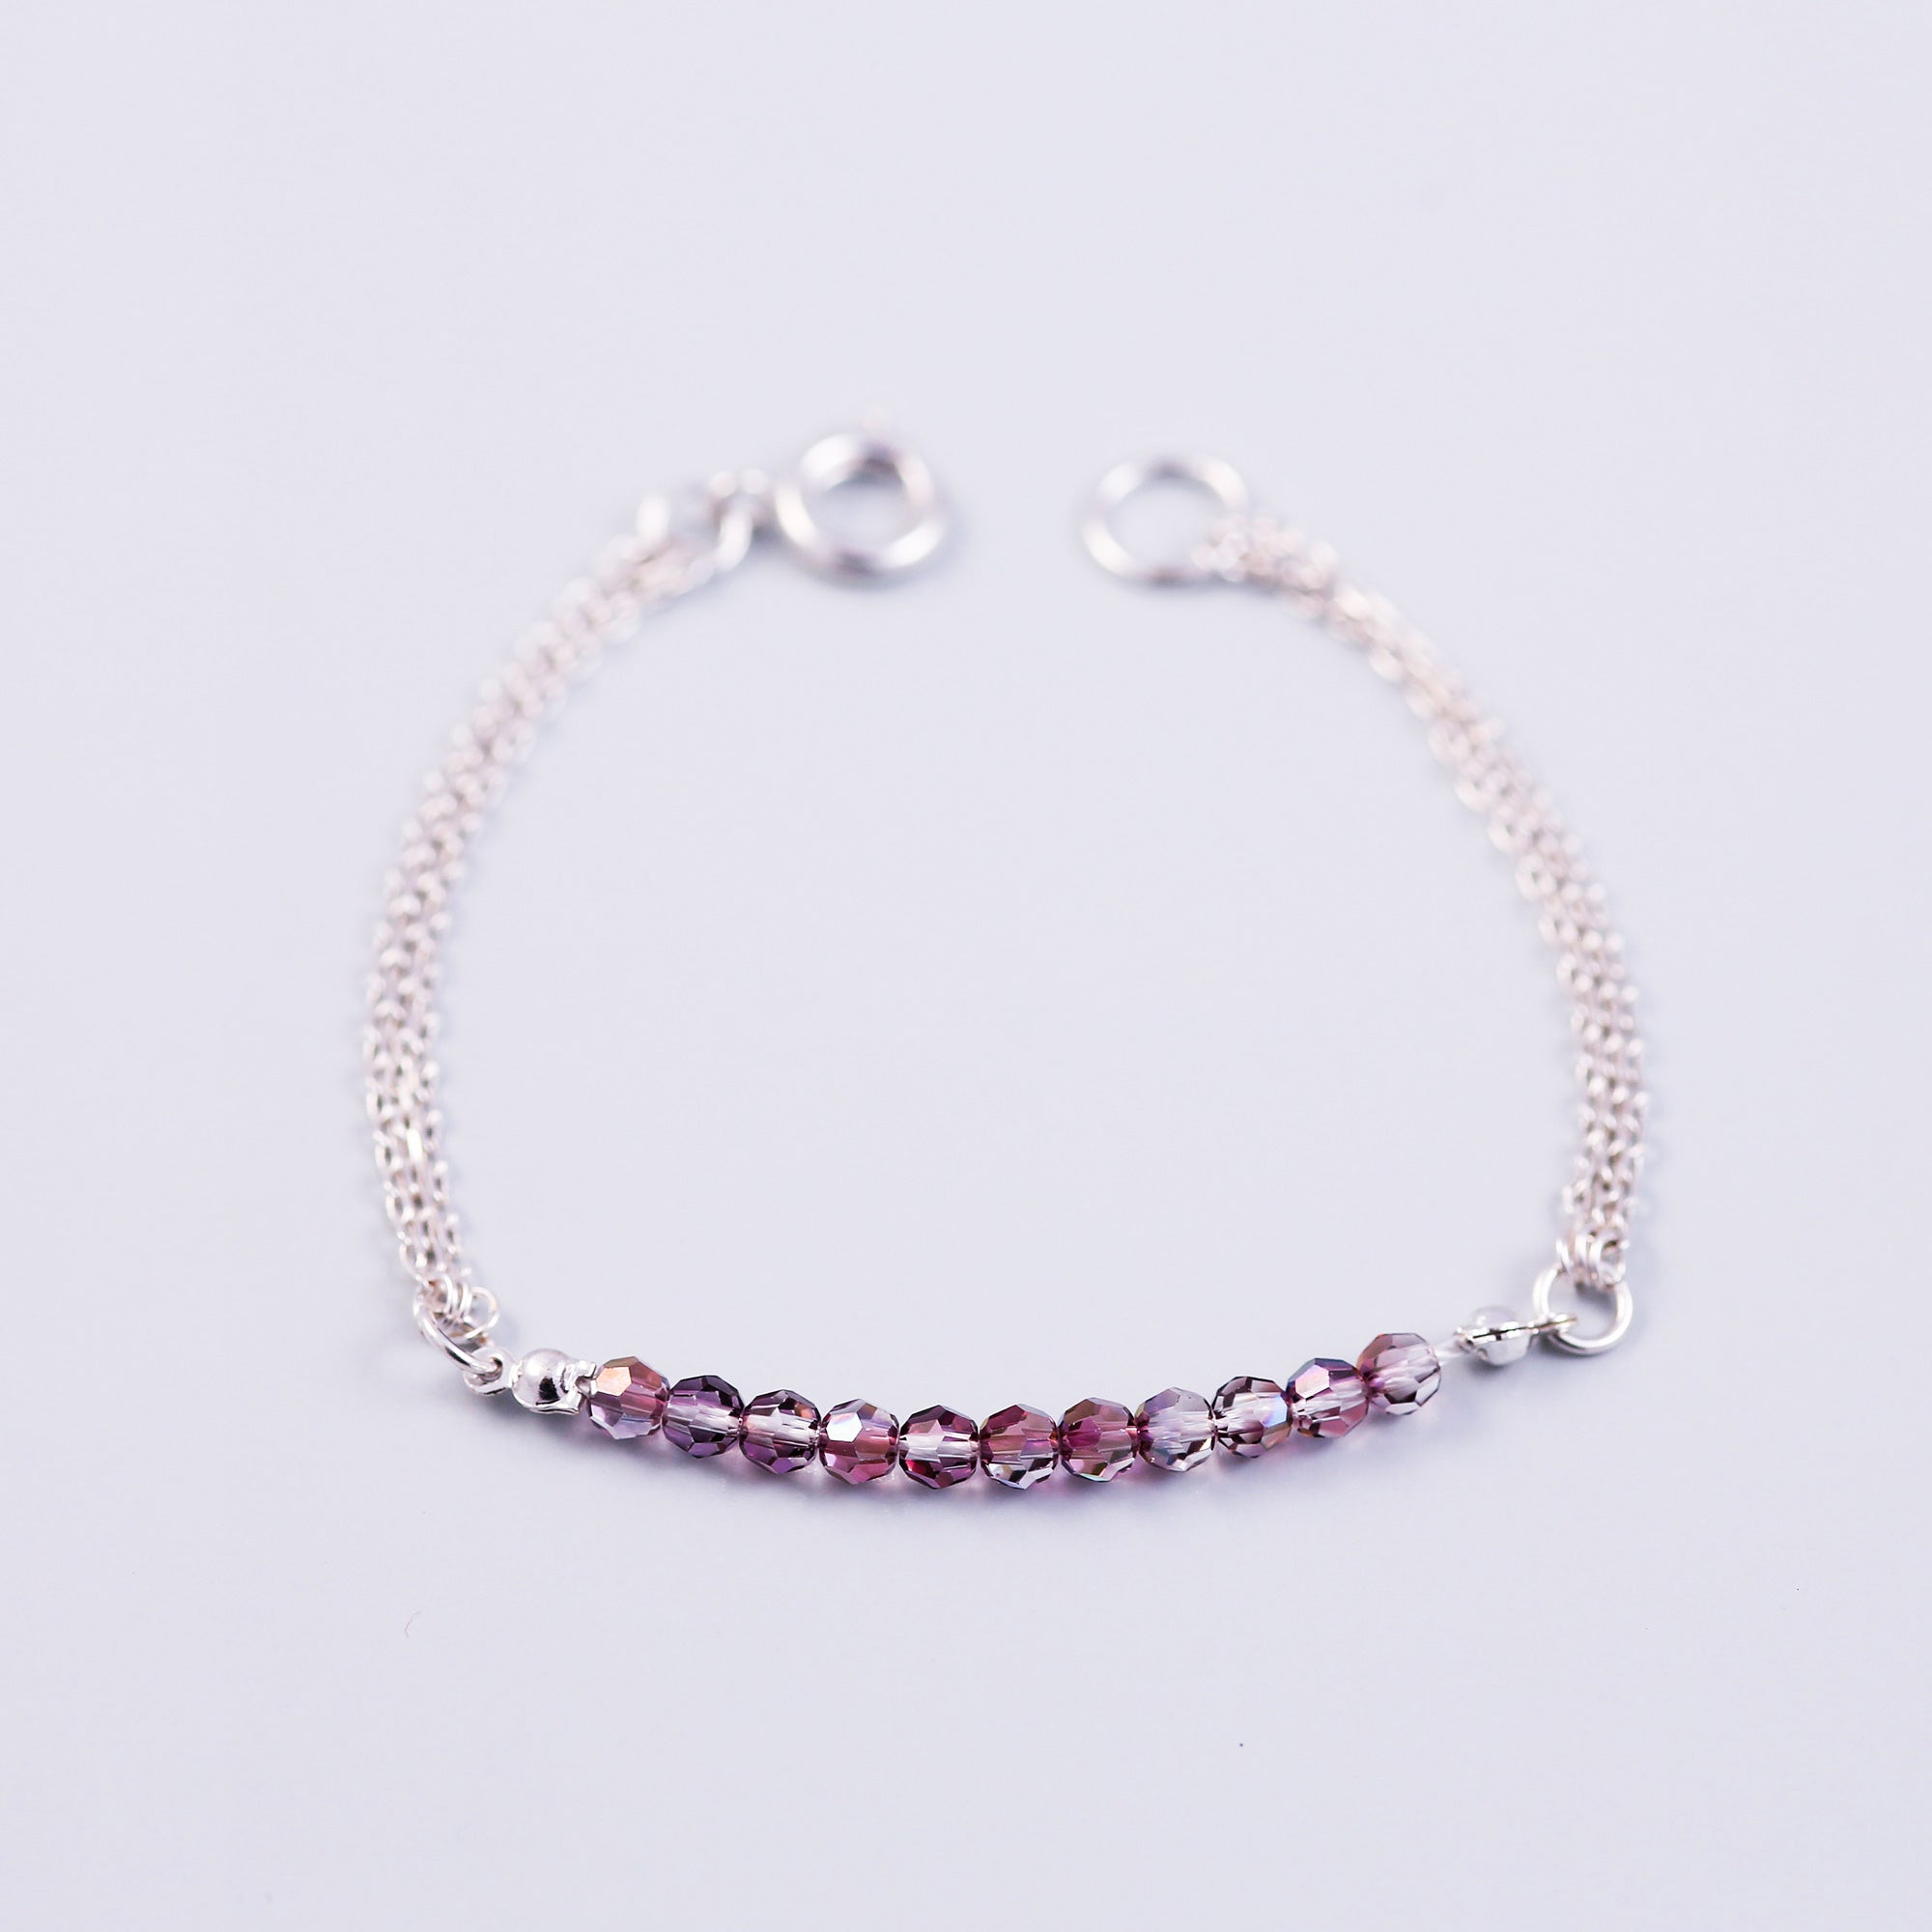 Beaded Bracelet | Cute Friendship Bracelets | Friendship Jewellery | Silver & Crystal Lilac Shadow